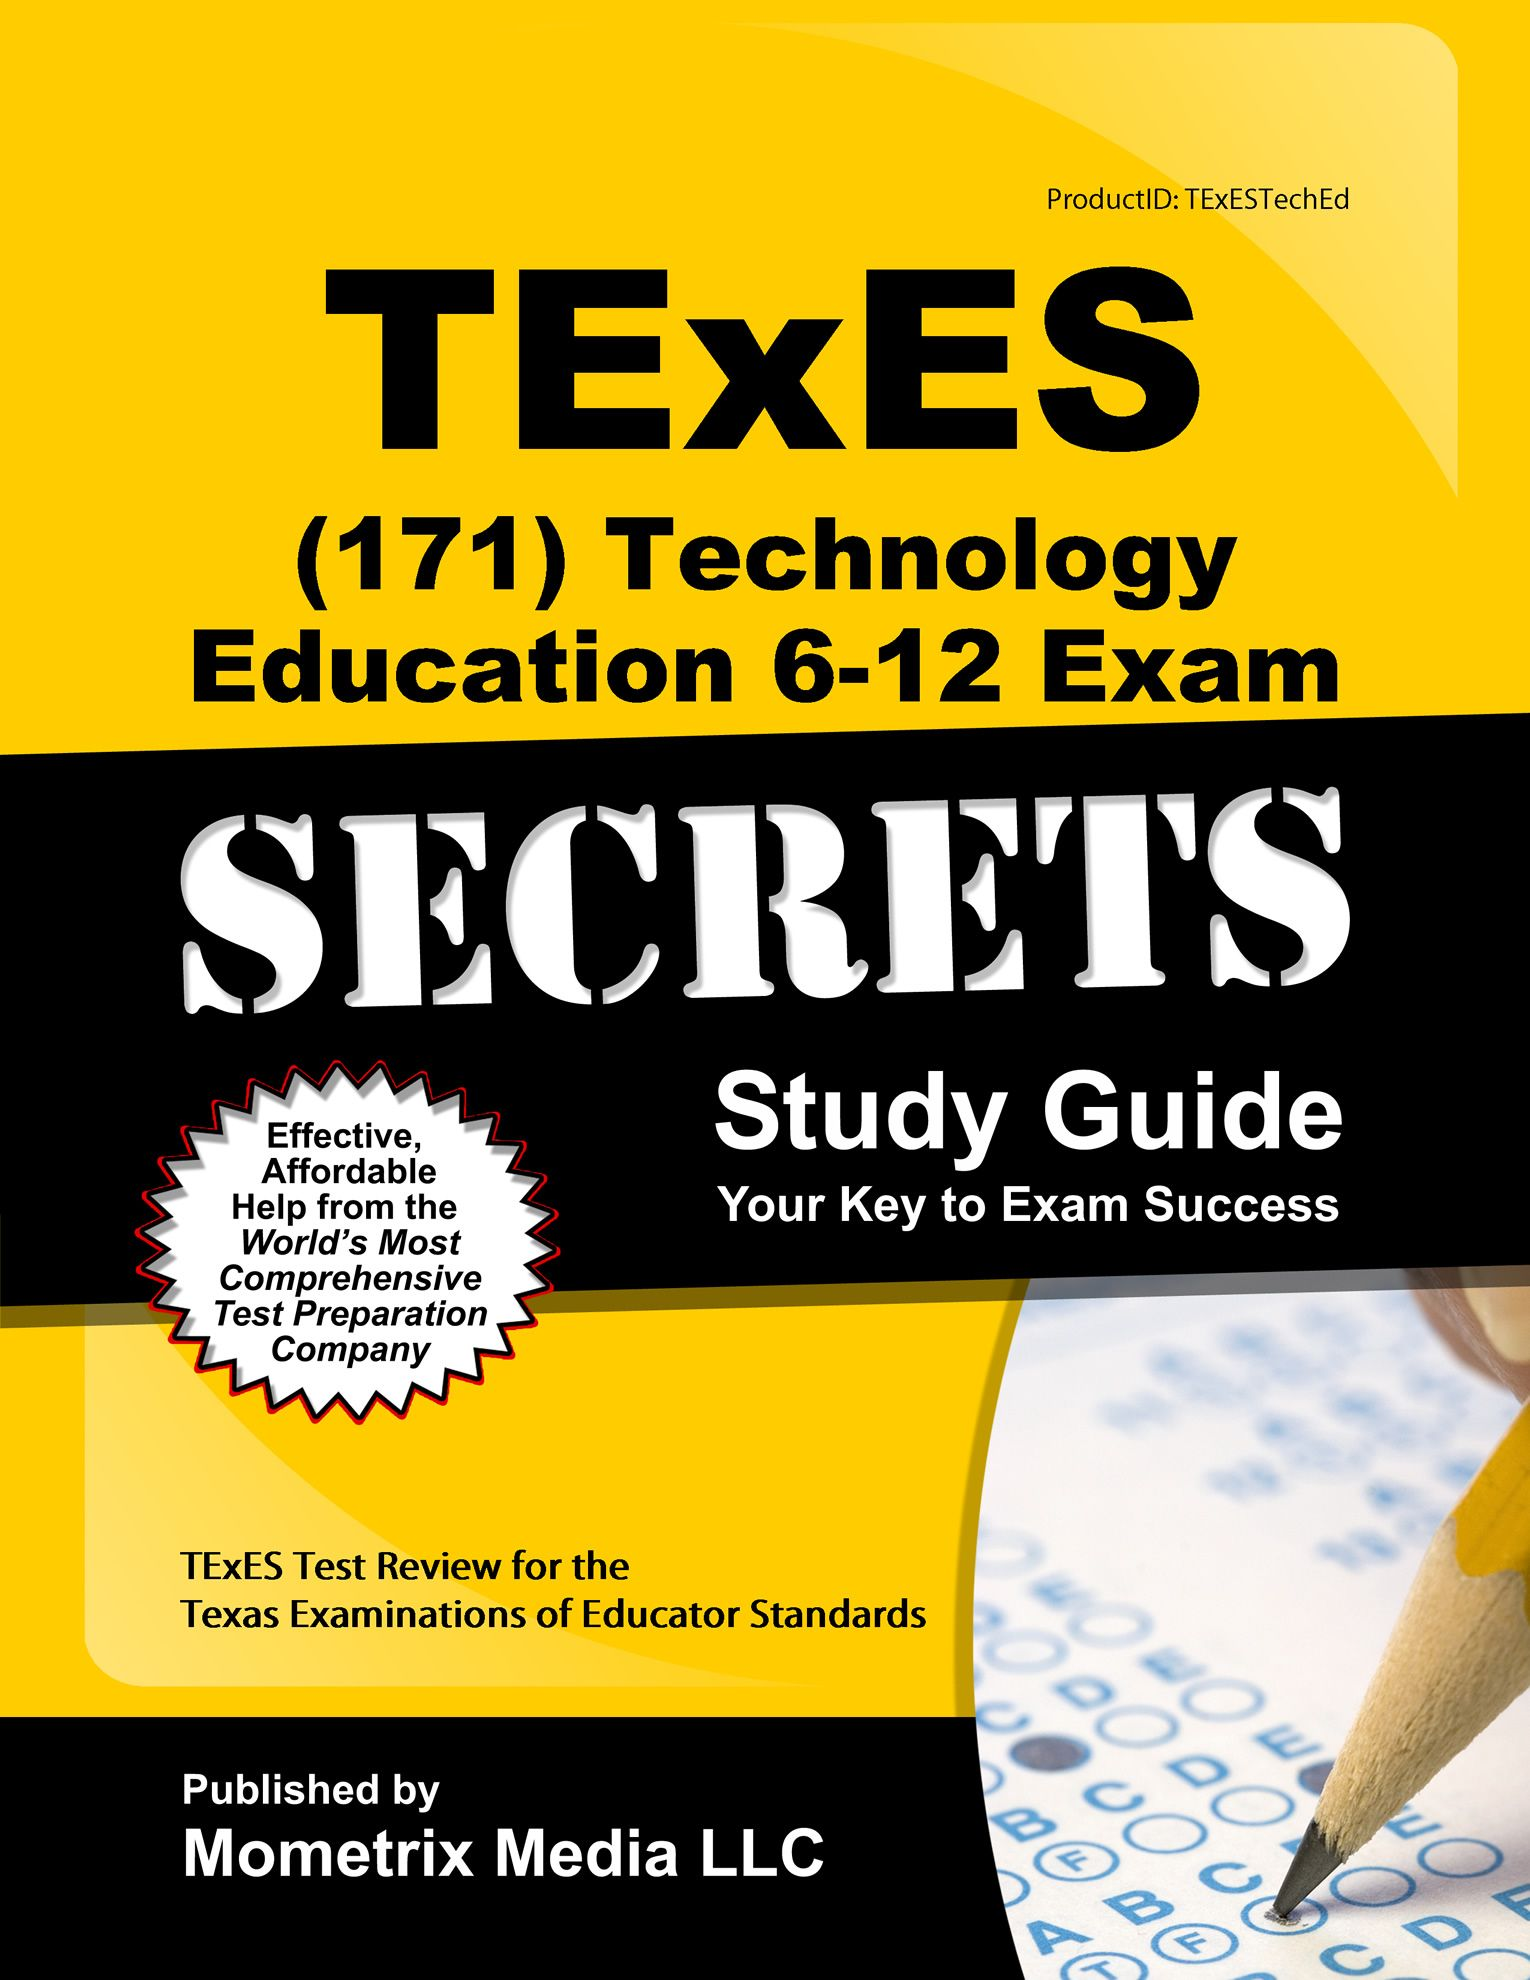 Texes 171 technology education 6 12 exam study guide httpmo explore test video dr who and more 1betcityfo Gallery